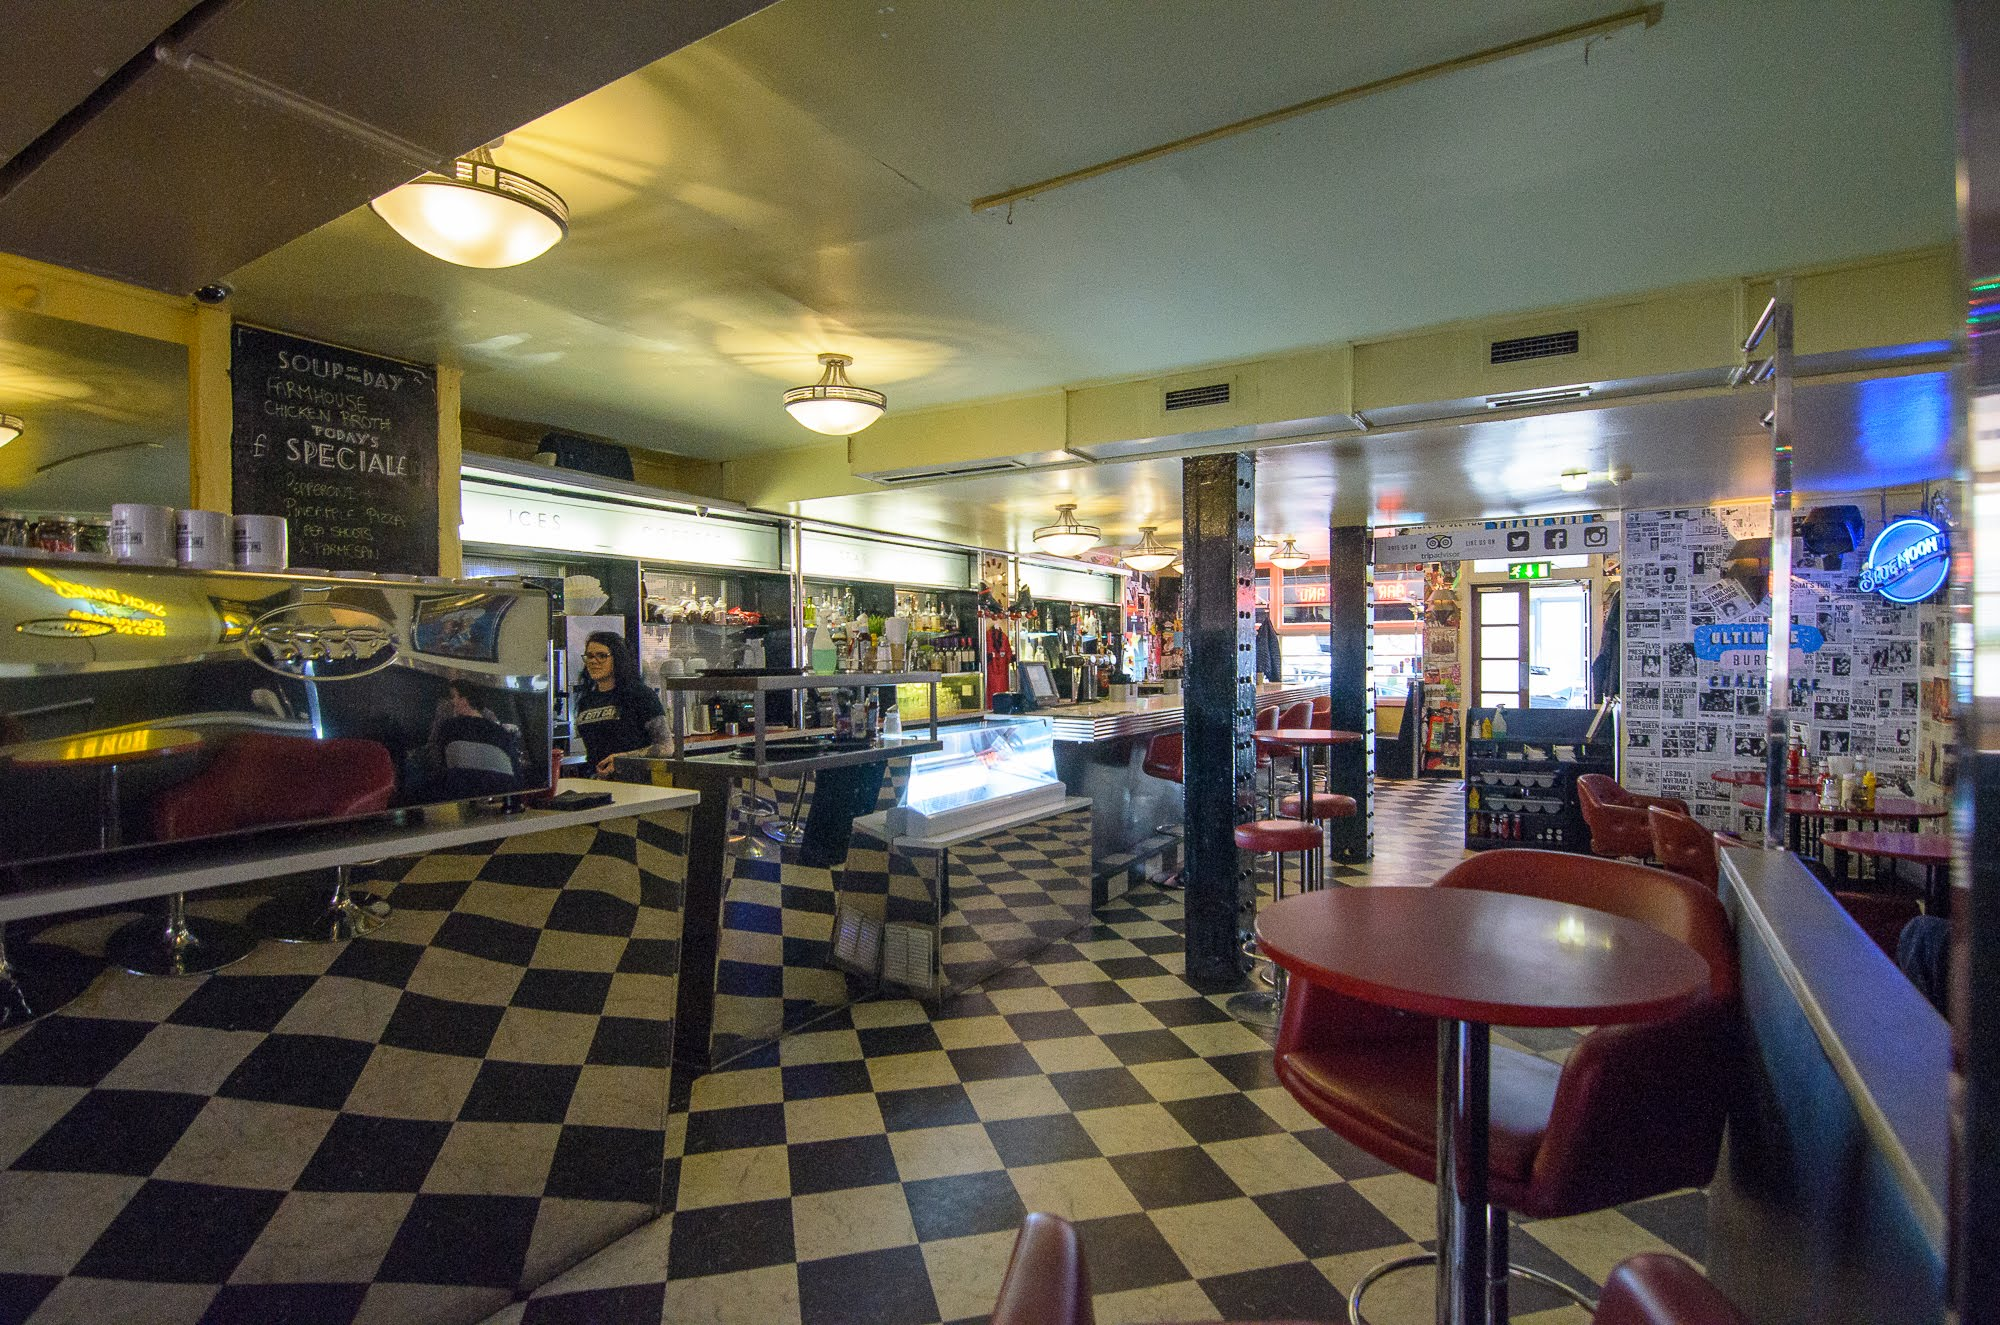 The City Cafe has an old school appeal